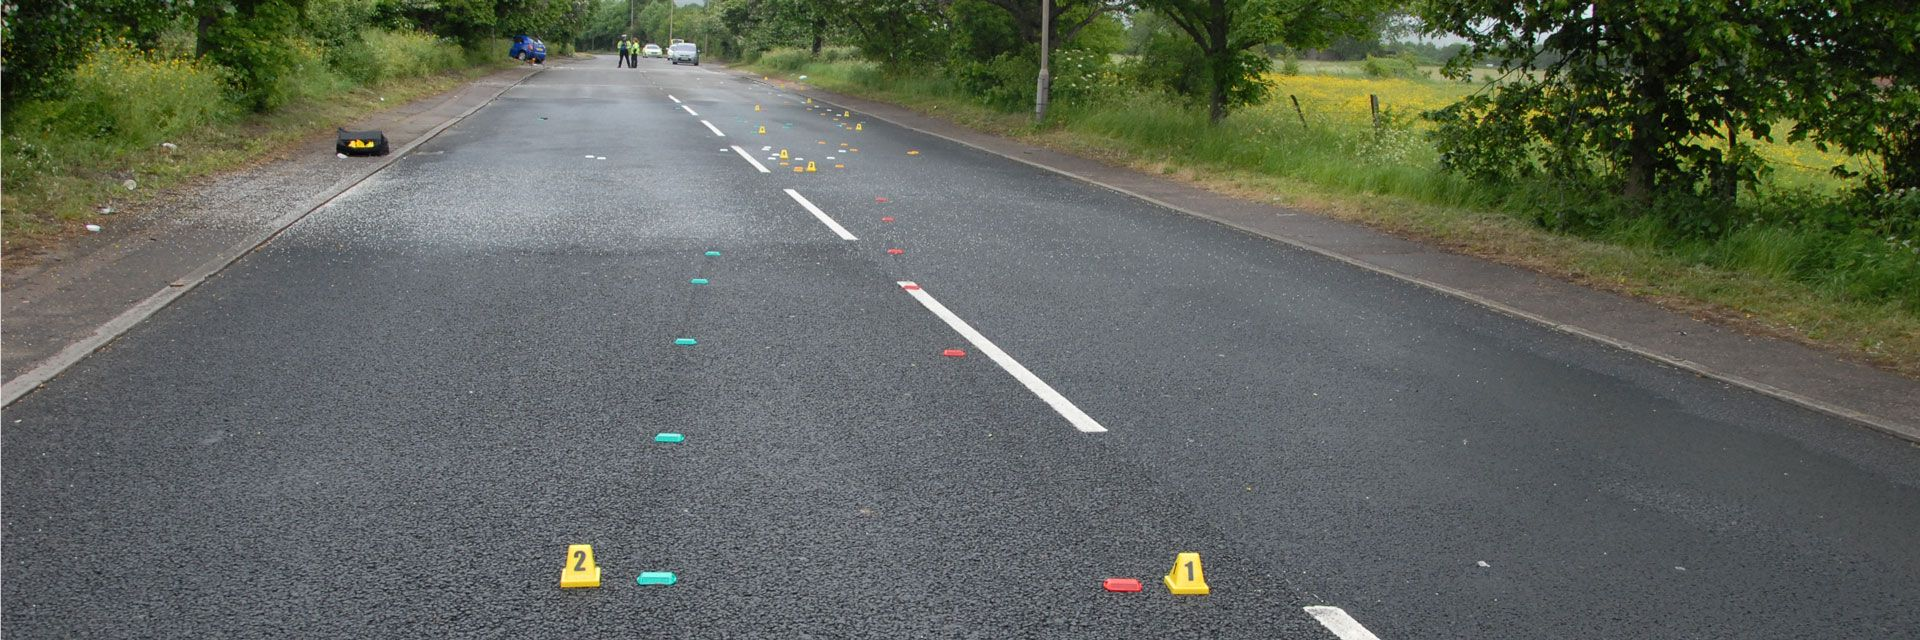 Road Traffic Accident Investigation